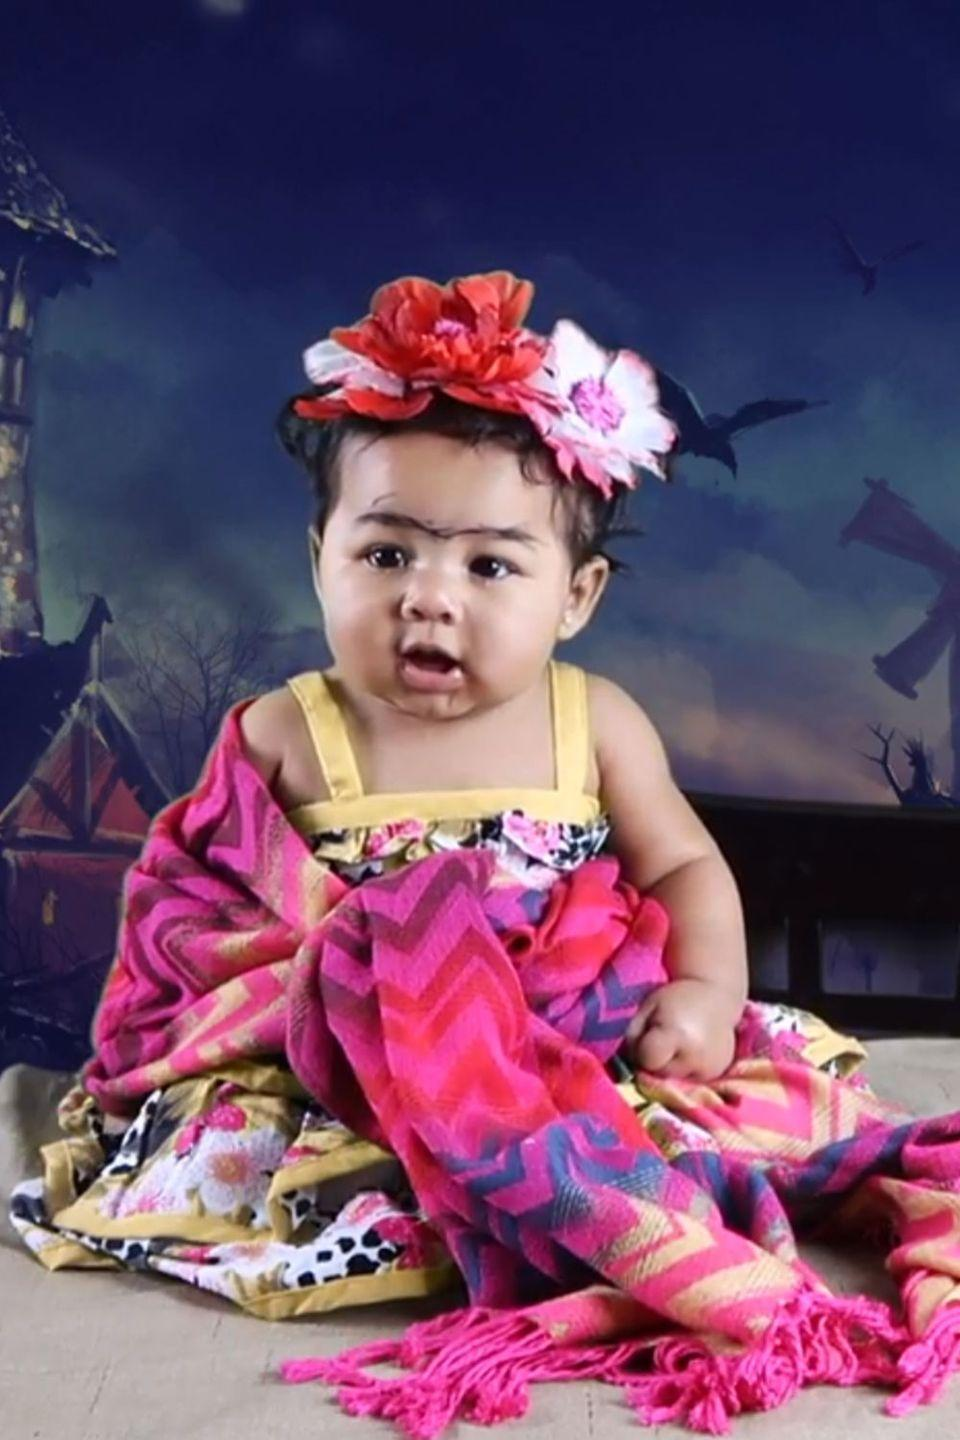 "<p>Baby unibrow <a href=""https://www.youtube.com/watch?v=cbRxvNLGsUQ&feature=youtu.be"" rel=""nofollow noopener"" target=""_blank"" data-ylk=""slk:makes this little Frida Kahlo"" class=""link rapid-noclick-resp"">makes this little Frida Kahlo</a> the most adorable artist of all time. </p><p><strong>RELATED:</strong> <a href=""https://www.goodhousekeeping.com/holidays/halloween-ideas/g23604771/babys-first-halloween-costume/"" rel=""nofollow noopener"" target=""_blank"" data-ylk=""slk:10 So-Cute-You'll-Scream Ideas for Baby's First Halloween Costume"" class=""link rapid-noclick-resp"">10 So-Cute-You'll-Scream Ideas for Baby's First Halloween Costume</a></p>"